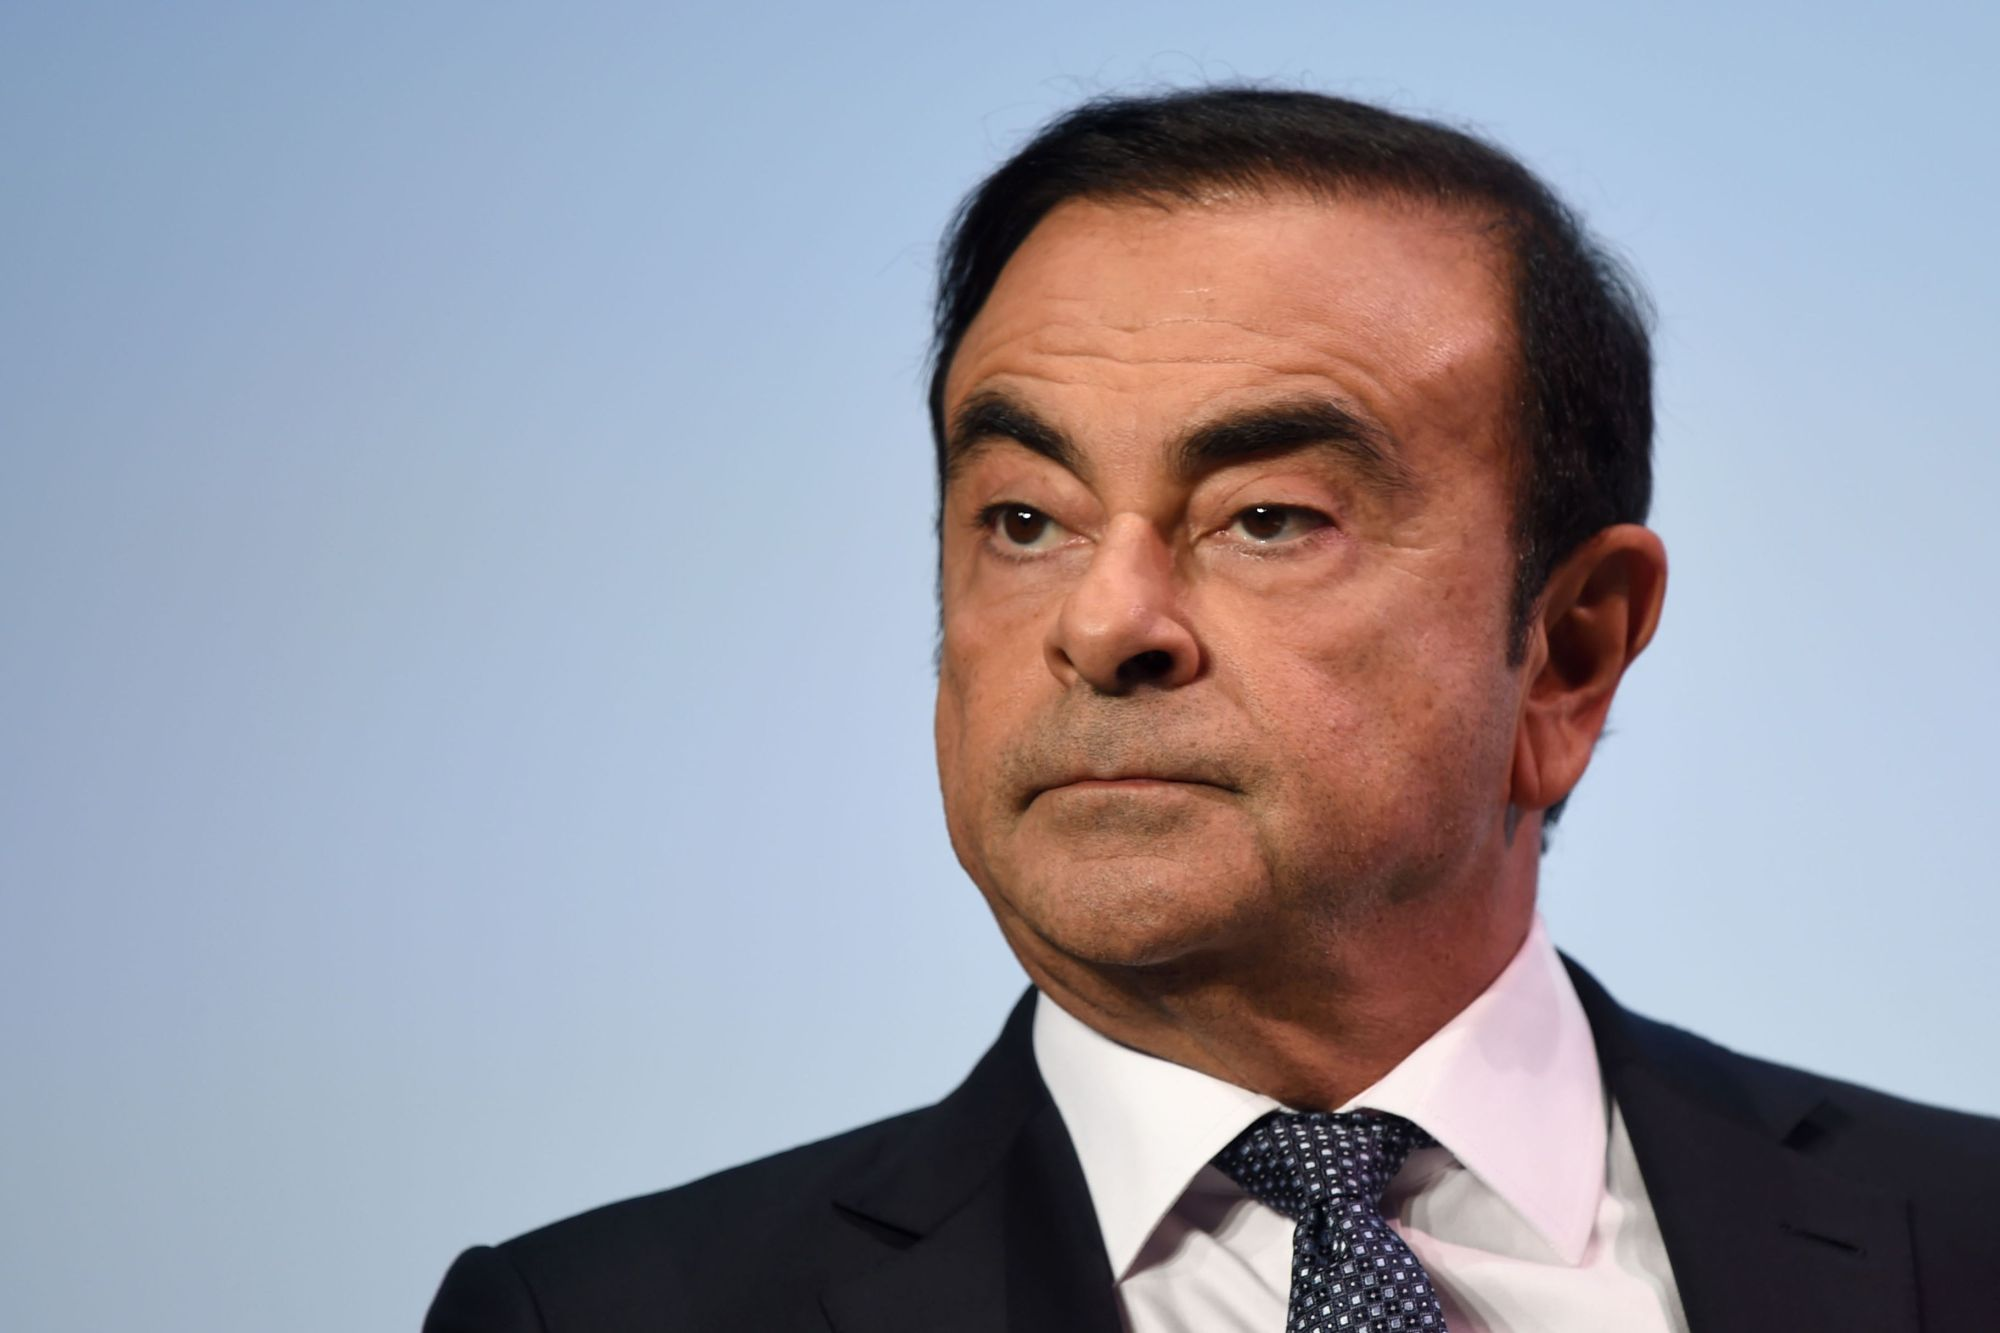 Had Carlos Ghosn's plans to incorporate rival Fiat-Chrysler into the Nissan-Renault alliance come to fruition, he might have created the world's largest carmaker and reasonably expected to be remembered as a business visionary. For the foreseeable future, however, he will be known above all as something very different: a fugitive.   BLOOMBERG